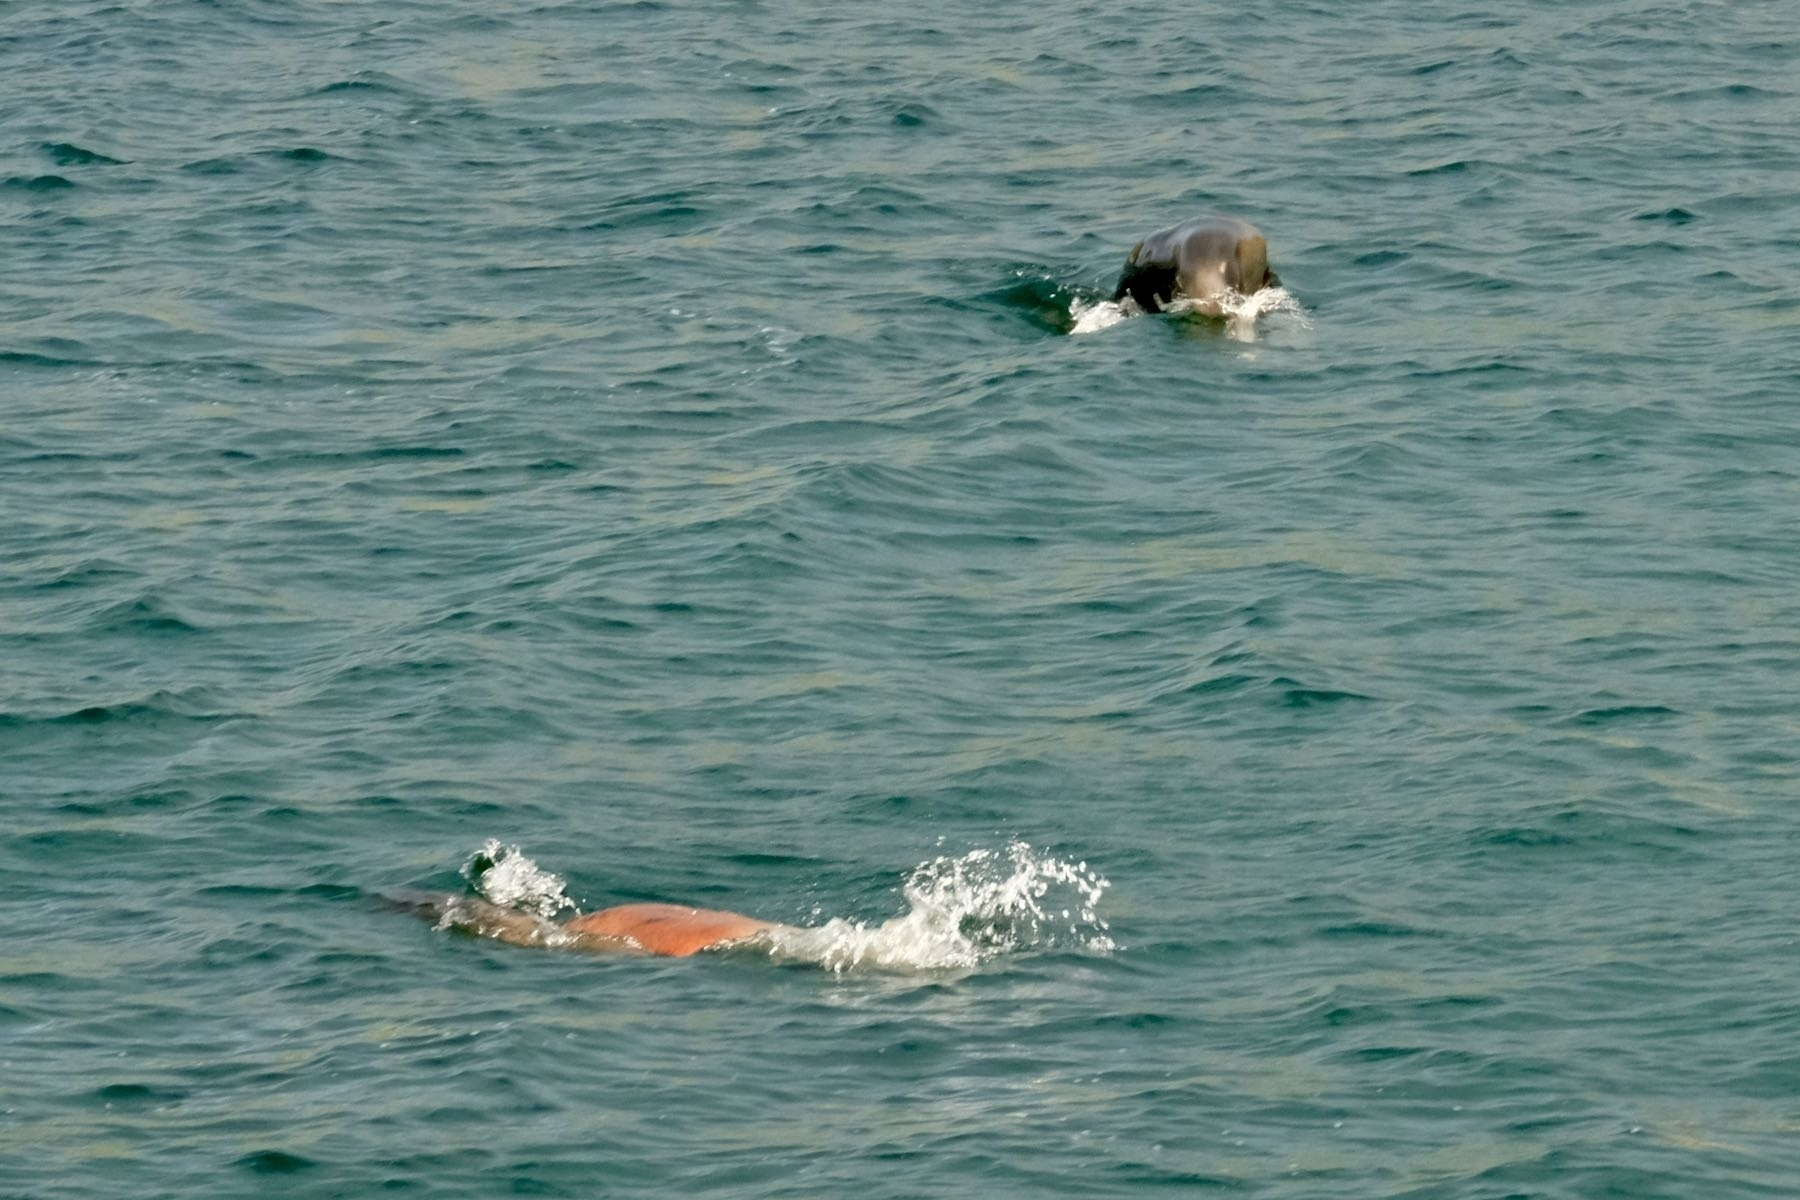 A couple of sealions frolicking in the sea.